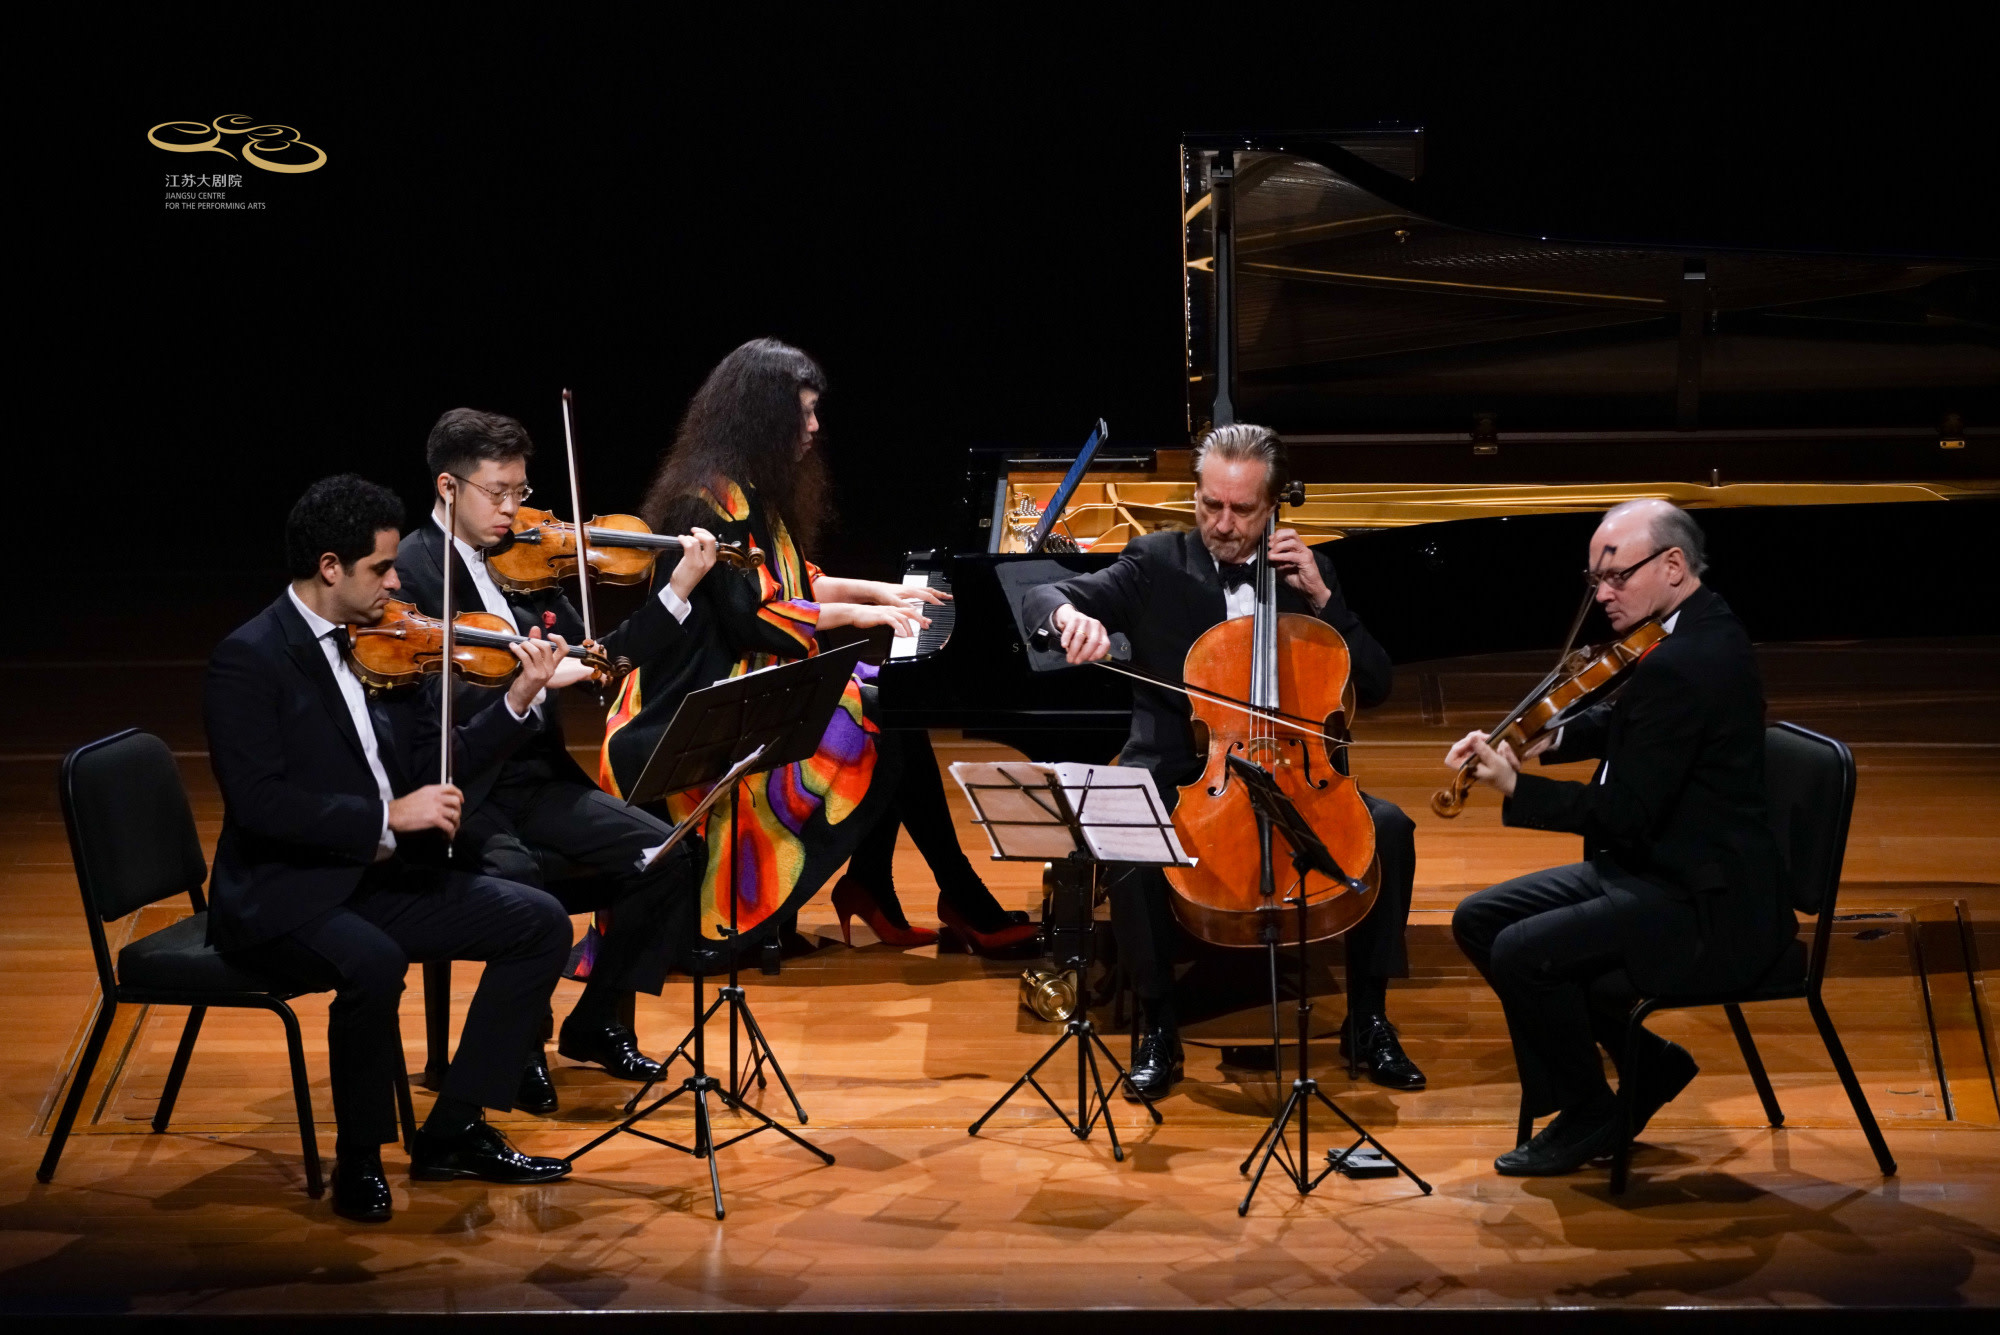 Violinists Arnaud Sussmann and Paul Huang, pianist Wu Han cellist David Finckel, and violist Paul Neubauer perform at the Jiangsu Centre for the Performing Arts in Nanjing, China